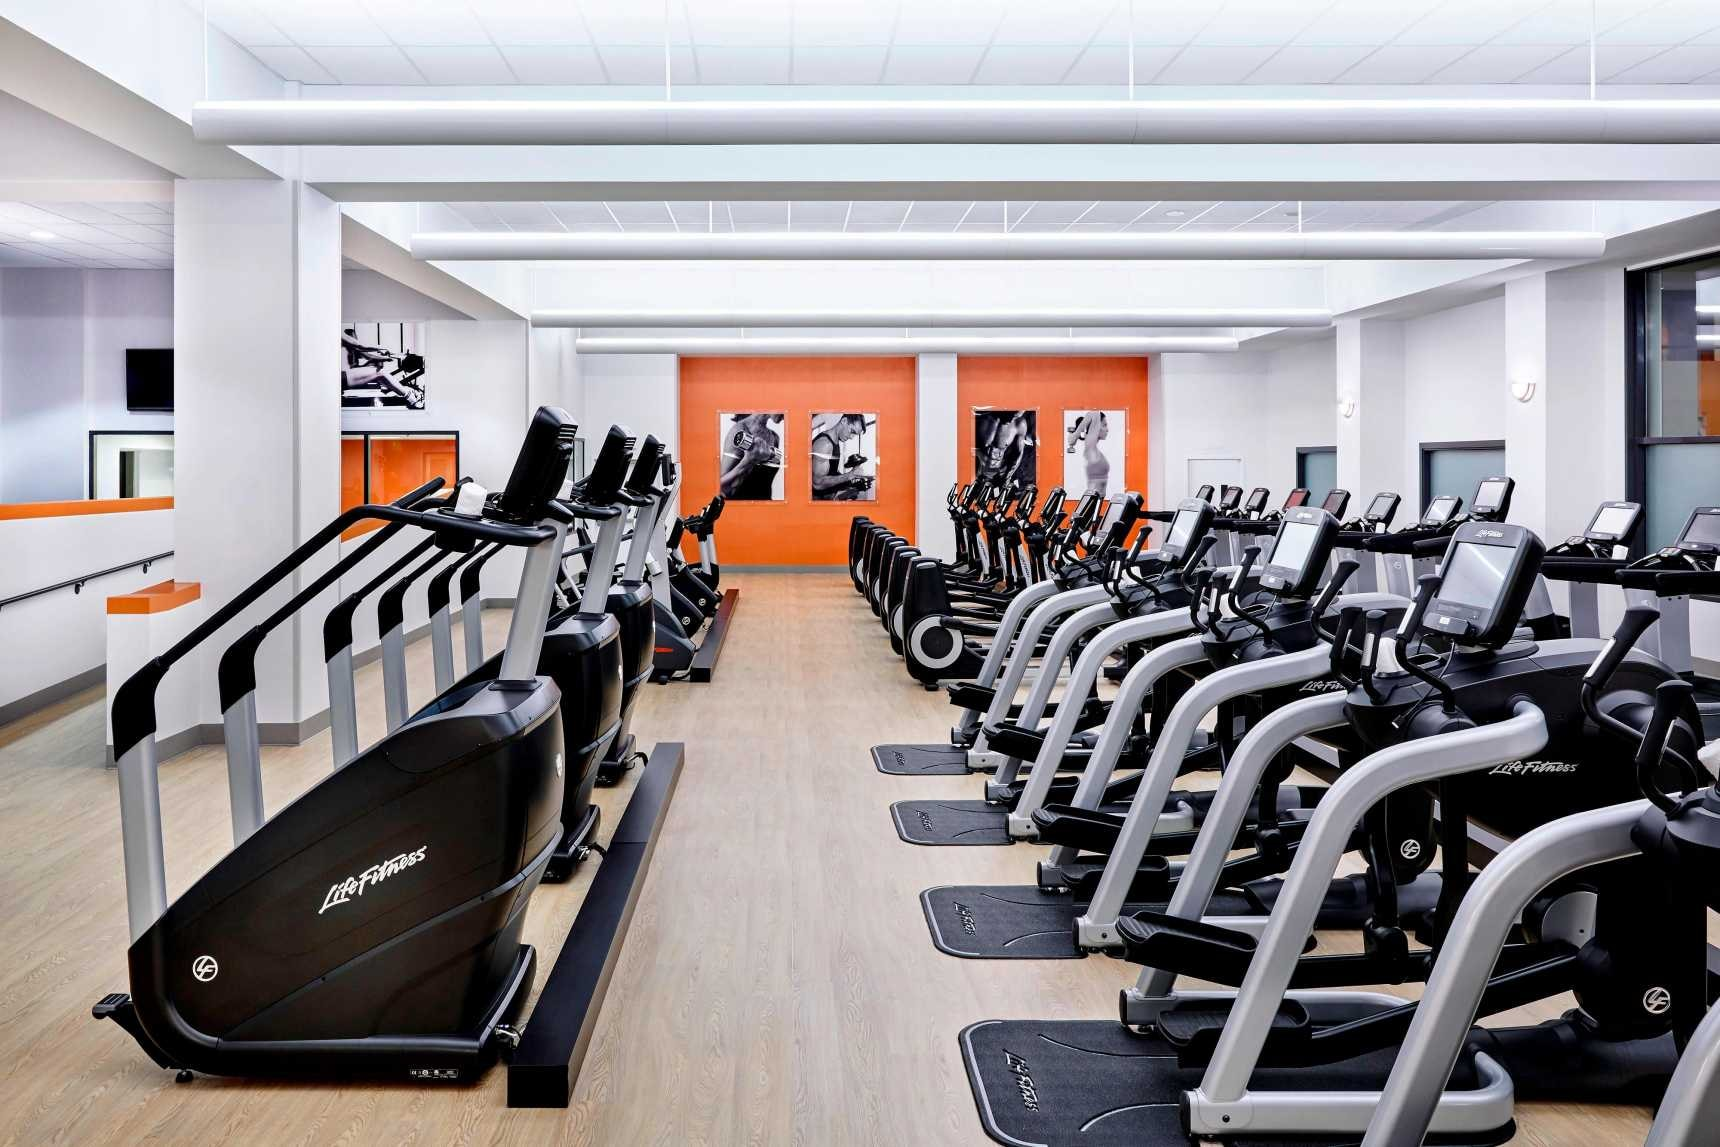 Ellipticals and Treadmills at the COR Health and Fitness center